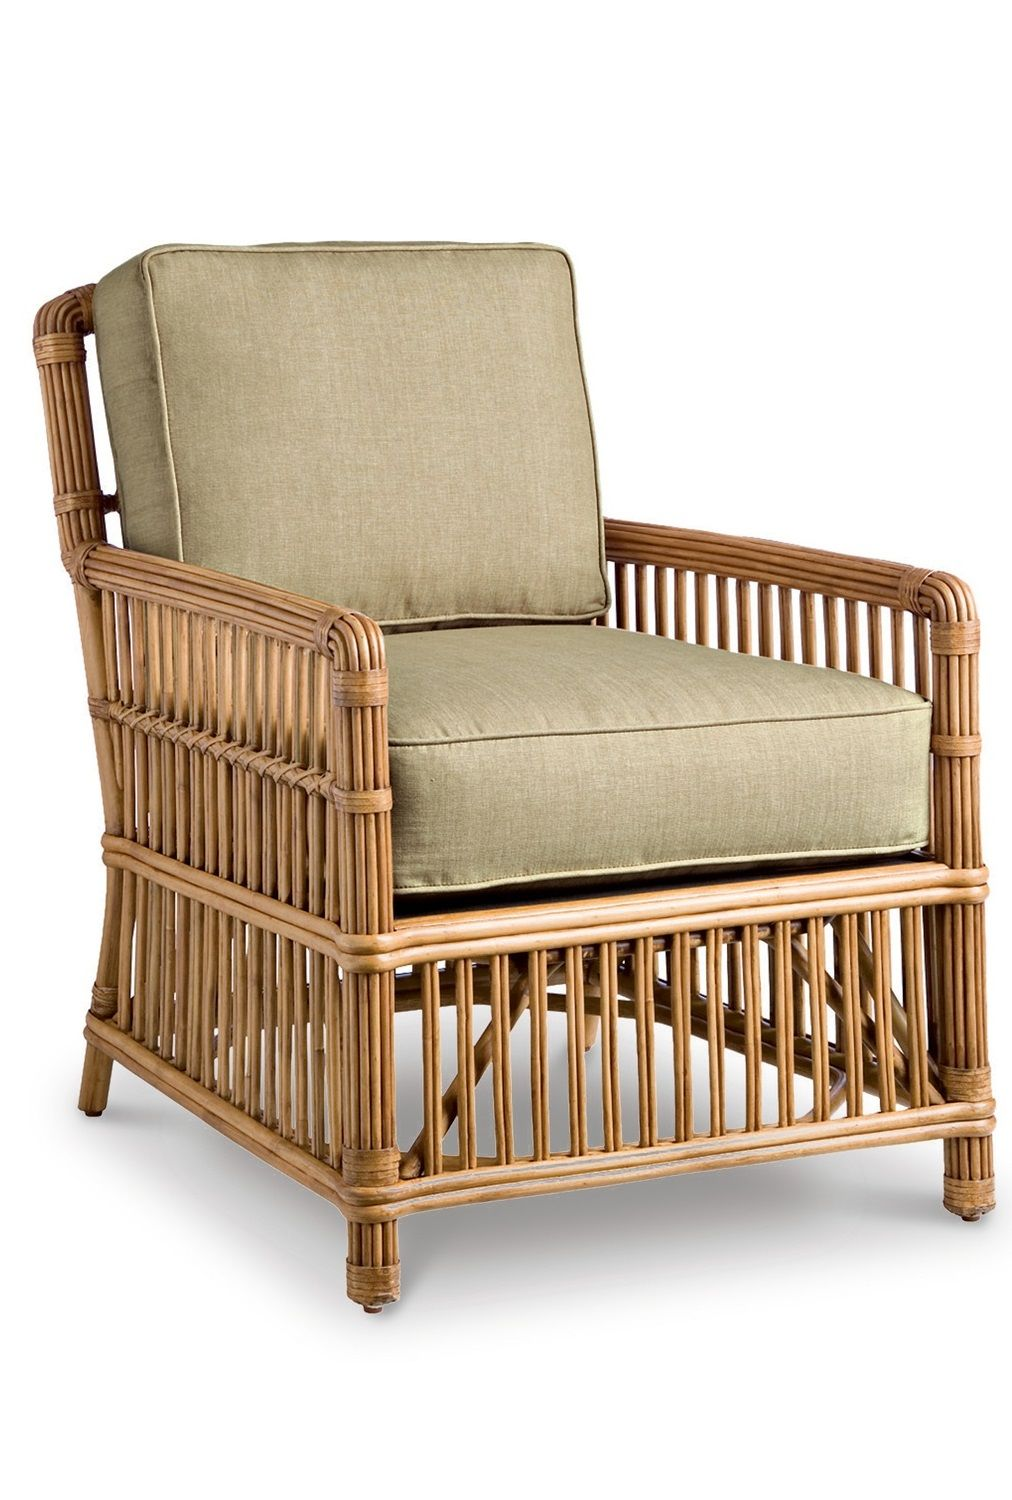 InStyle Decorcom Luxury Resort Hotel Furniture Wicker Rattan